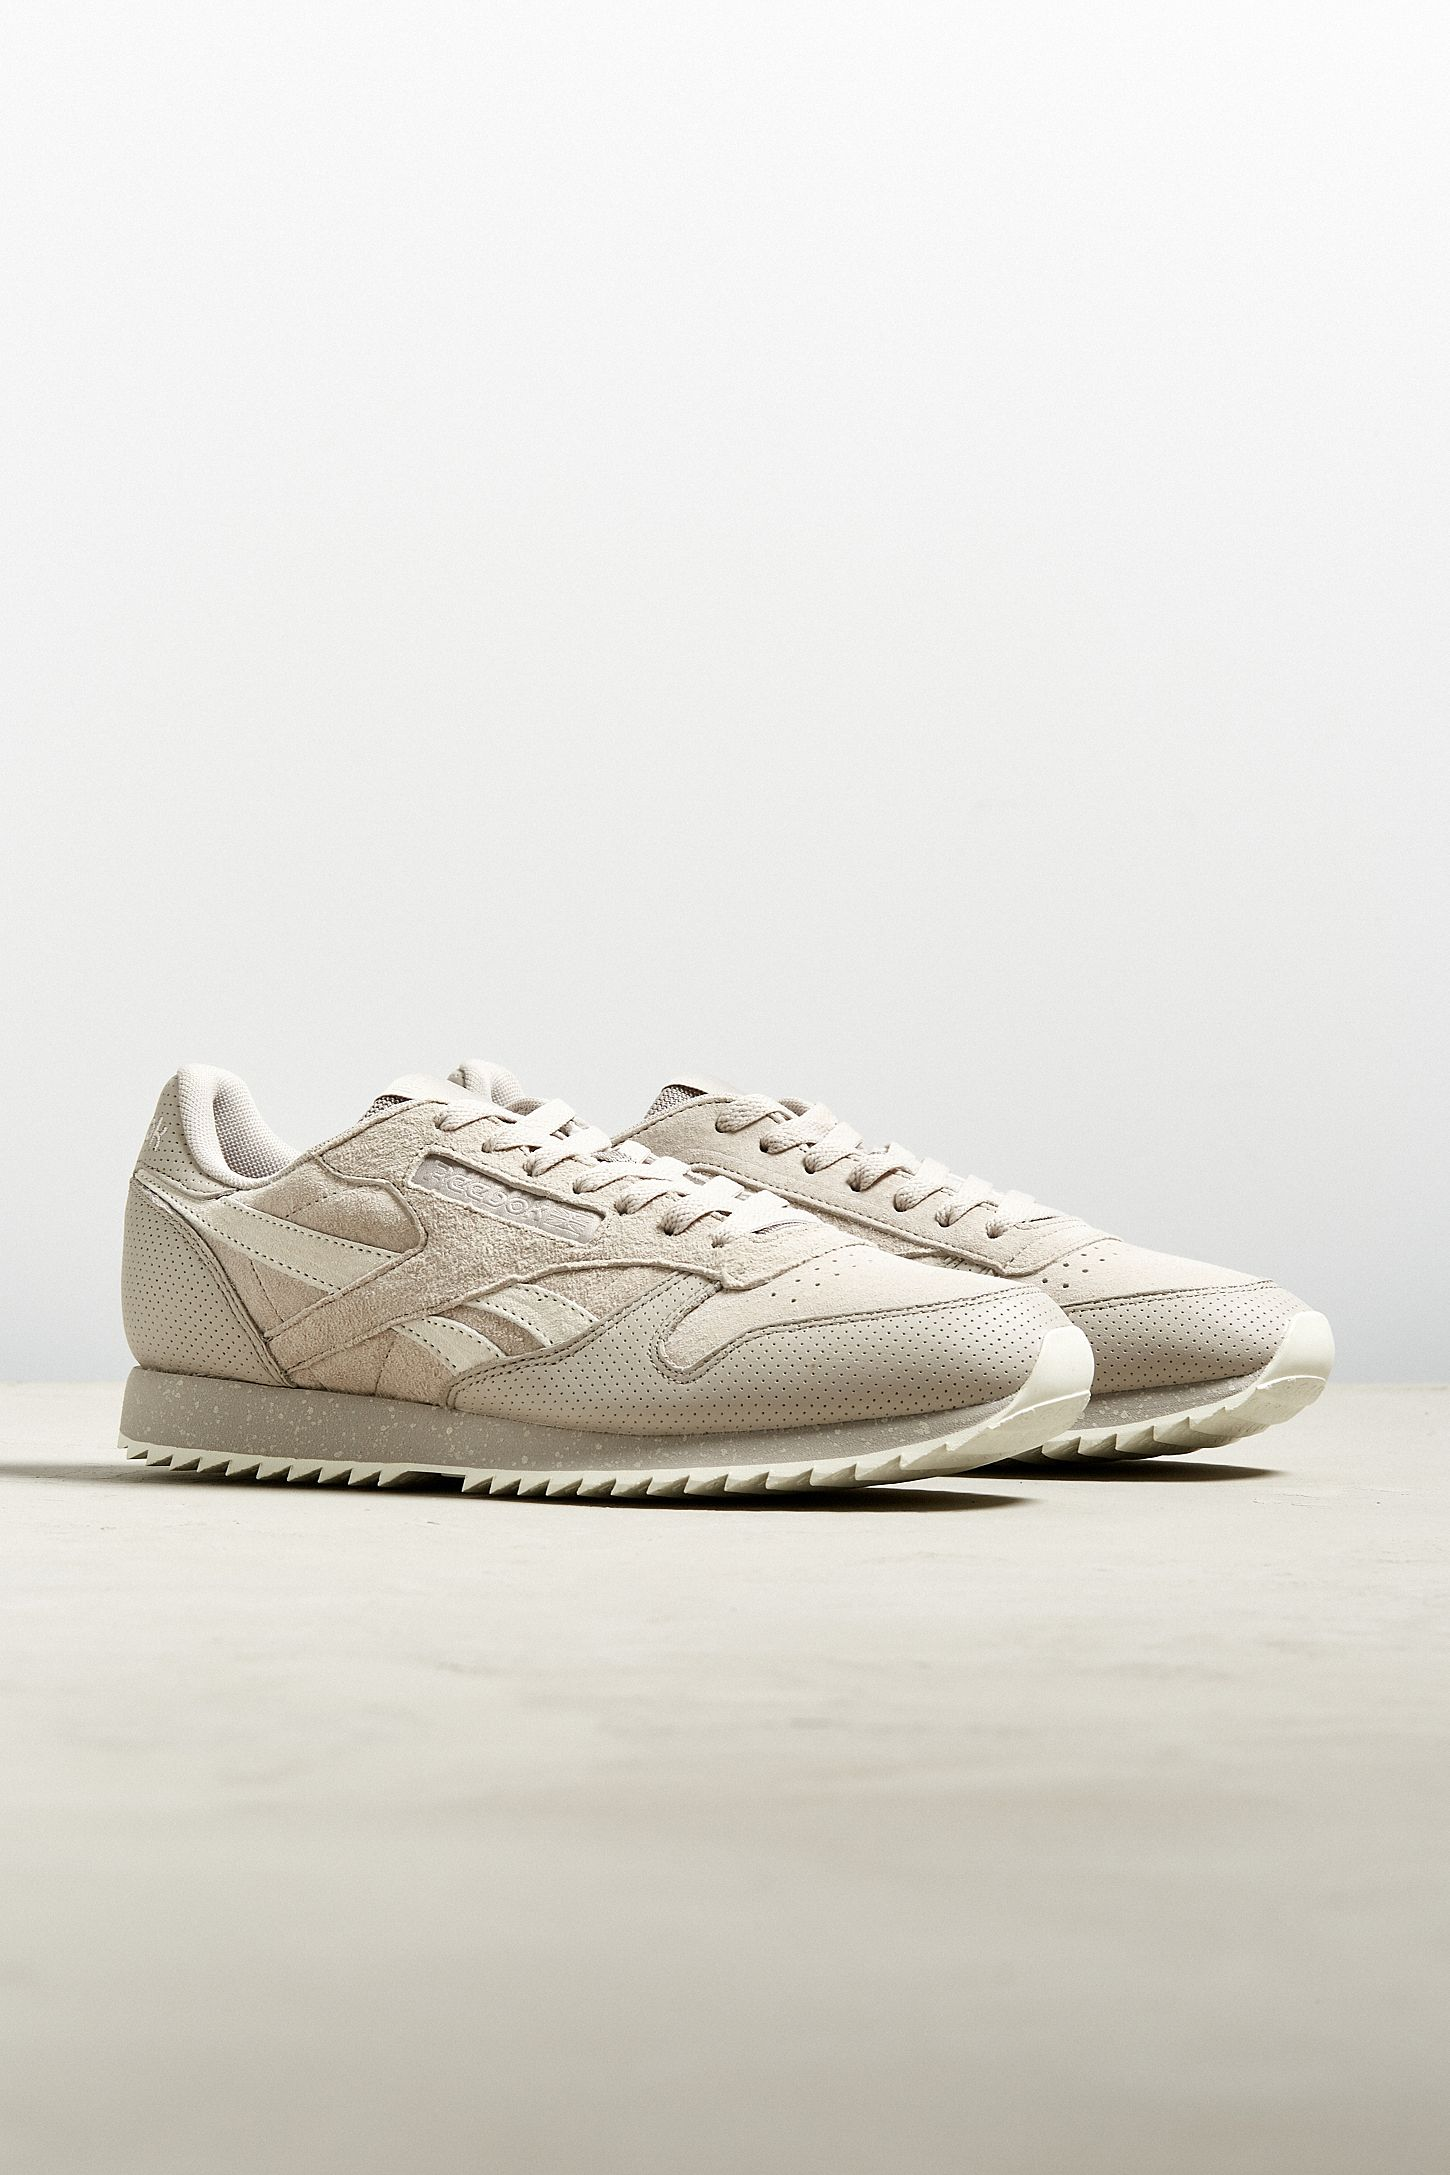 7c0bf1e840f Reebok Classic Leather Ripple Sneaker